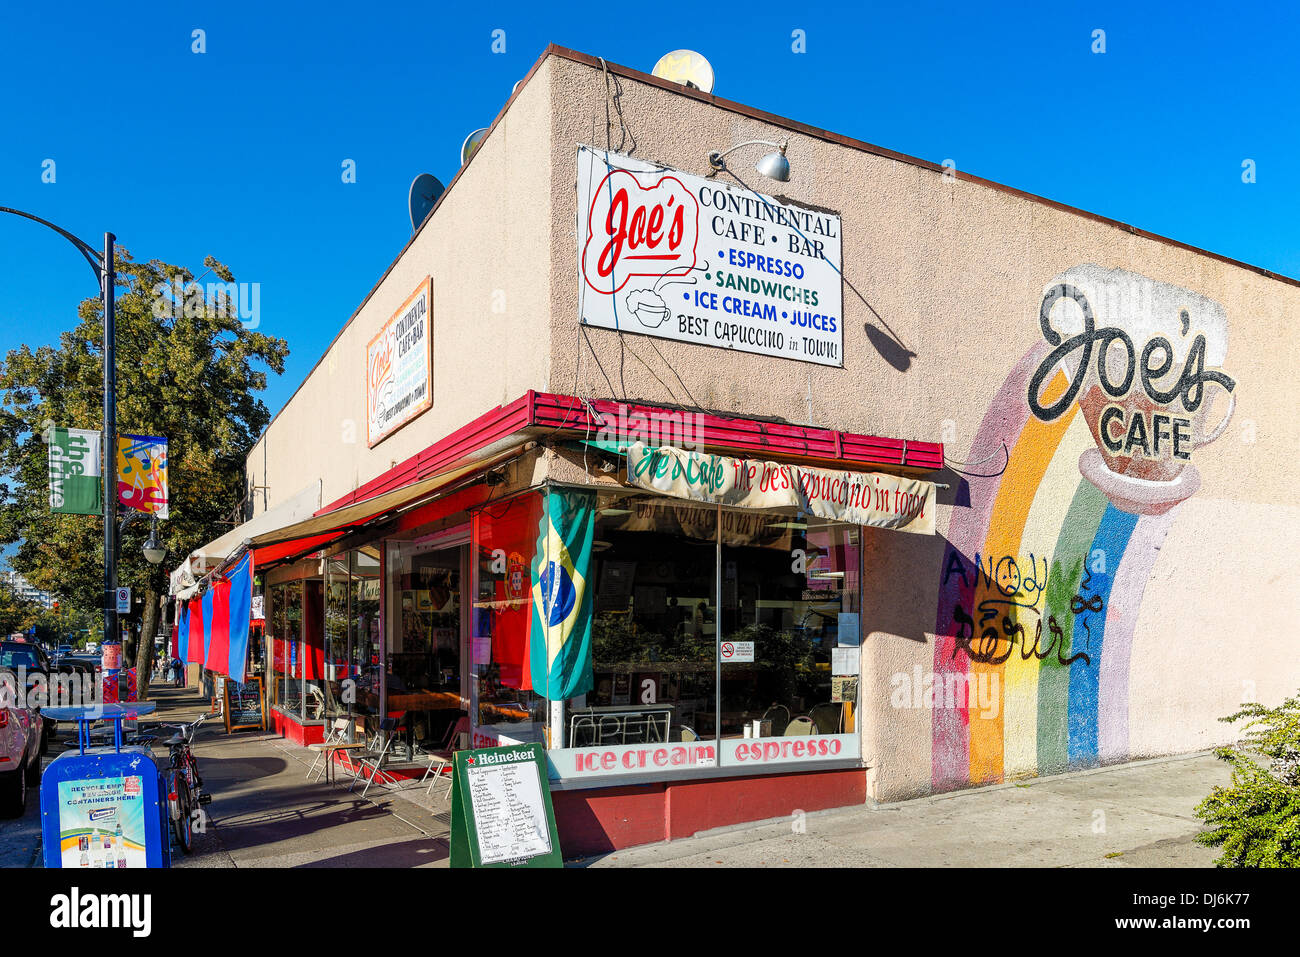 Joes Cafe, Commercial Drive, Vancouver, British Columbia, Canada Stock Photo